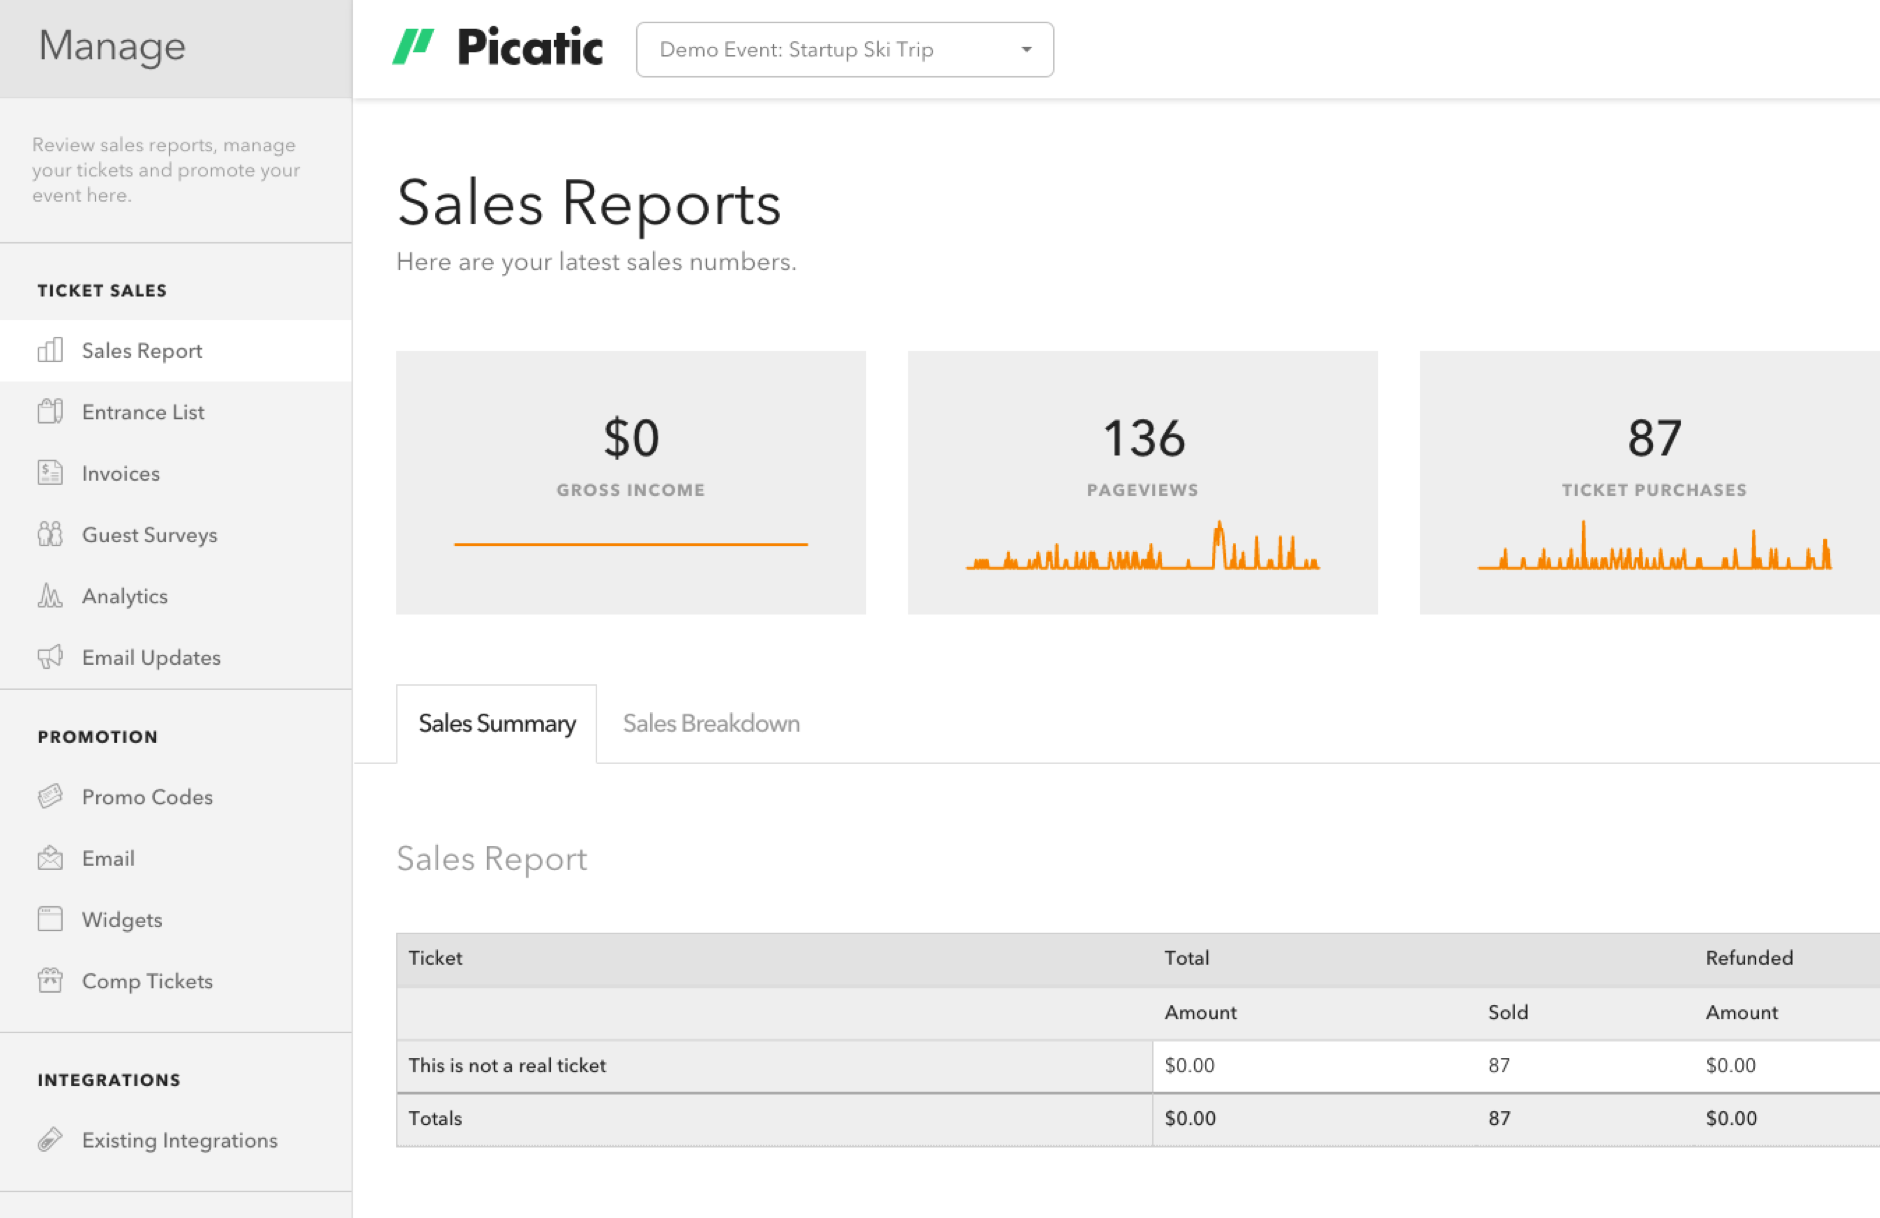 Picatic Event Management. Analyze how your event is performing and manage your entrance list.